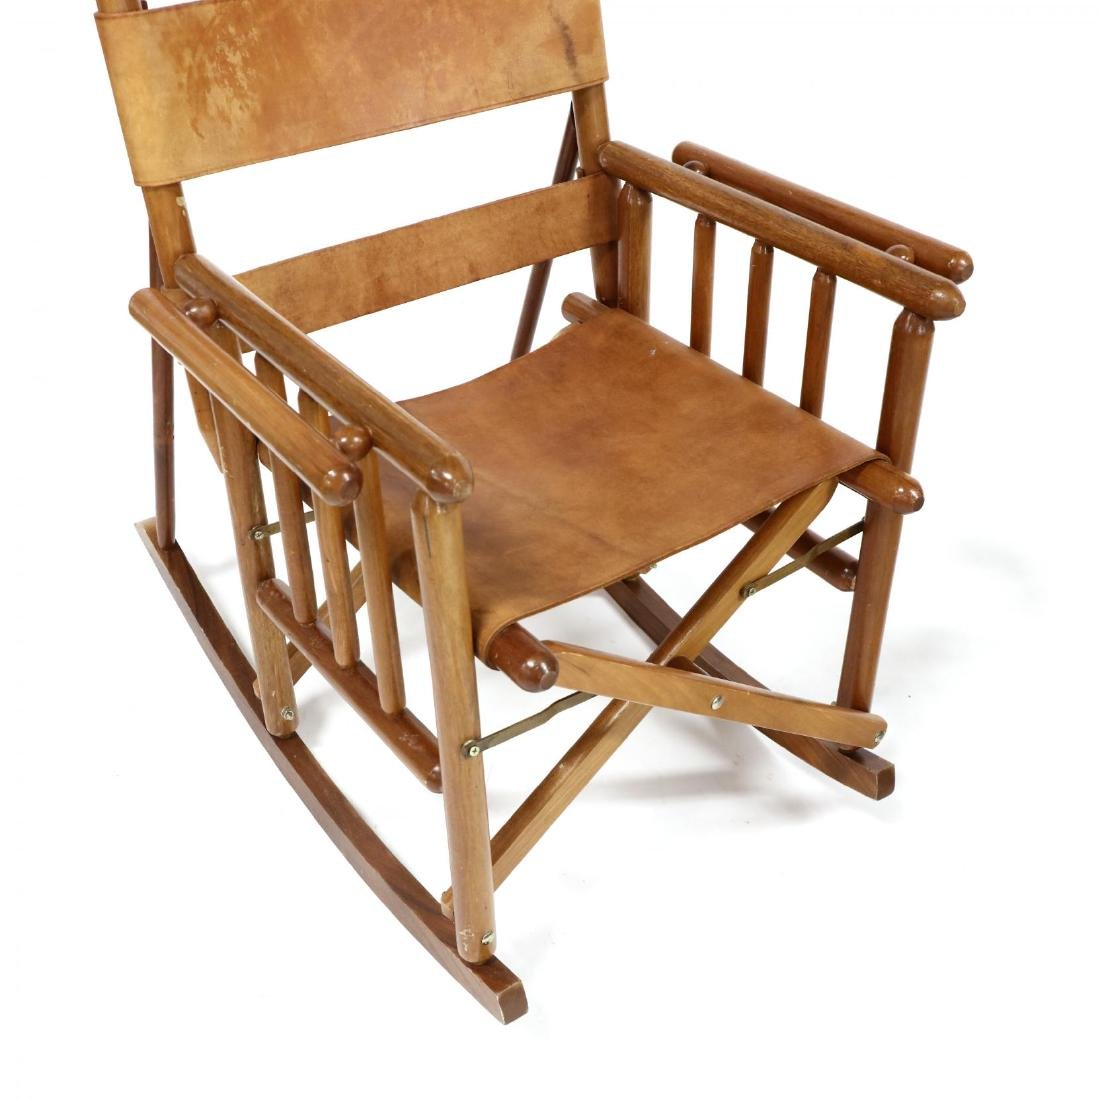 Pair of Modern Teak and Leather Campaign Rocking Chairs - 2